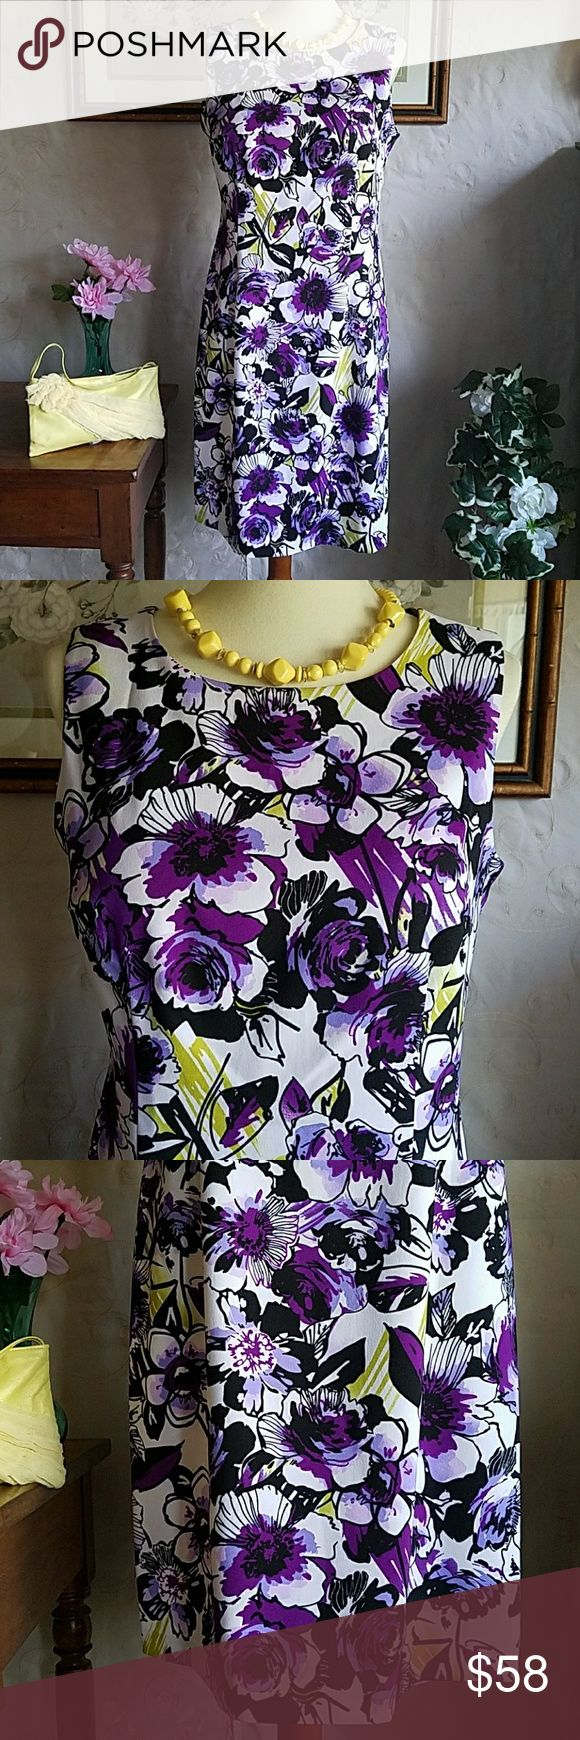 NWOT💜 Ronni Nicole Floral Sheath Dress 💜 Gorgeous Purple and Chartreuse💛  Sleevless almost abstract floral print  Sheath Dress💜 🌟Beautifully tailored fit, hidden back zippered closure🌟 🌟 97% Polyester 3% Spandex  🌟 36 Length 🌟 NWOT🤗 Just in time for your fresh Spring wardrobe🎉🎉 Ronni Nicole Dresses